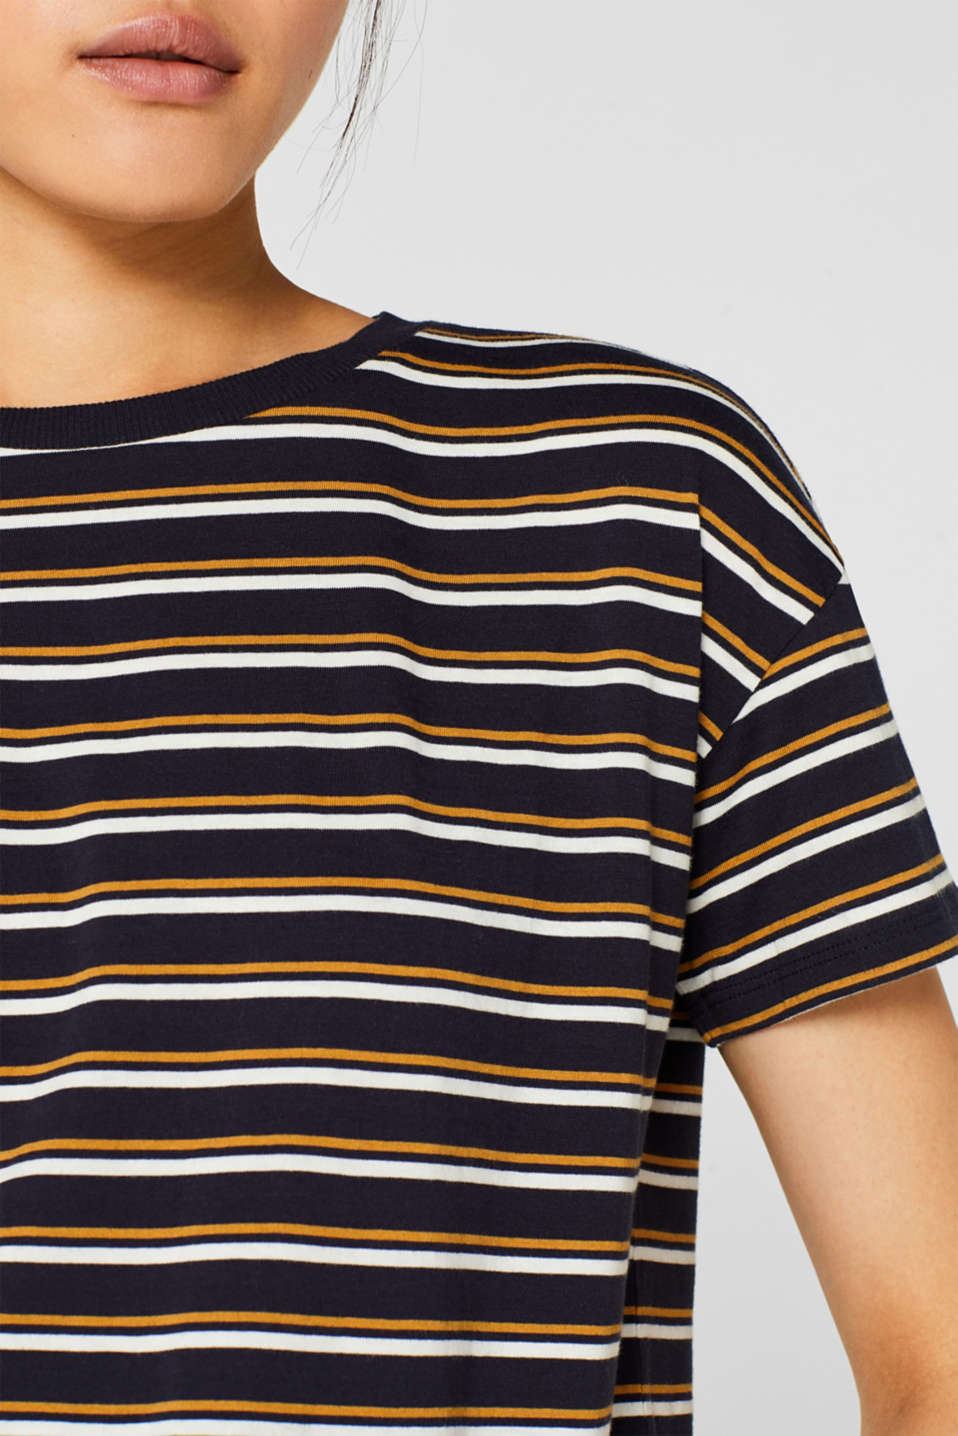 Striped T-shirt, 100% cotton, NAVY, detail image number 2